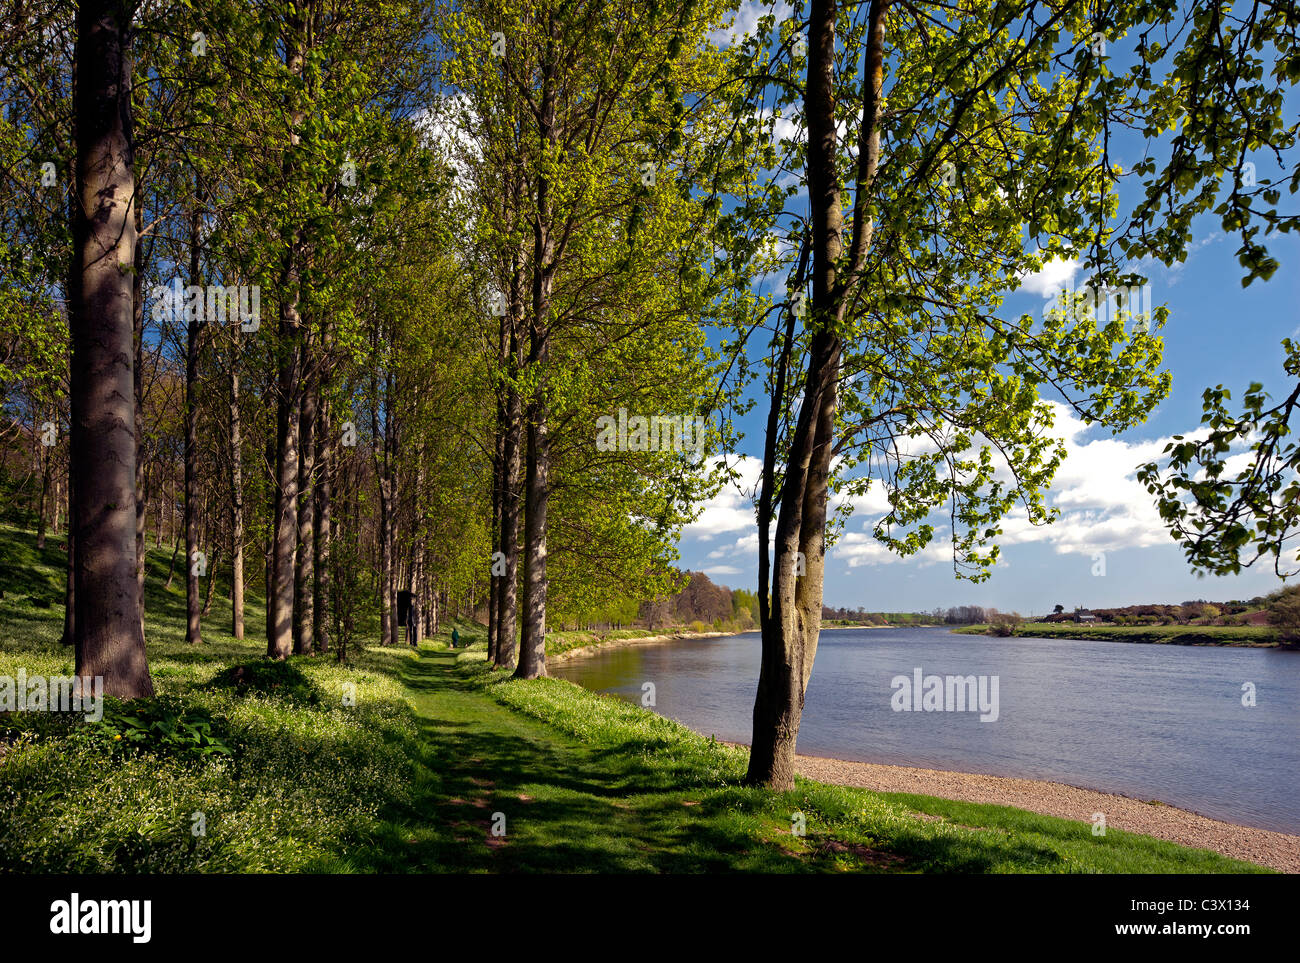 Springtime view along the River Tweed near Paxton House, Berwickshire, Scottish Borders - Stock Image